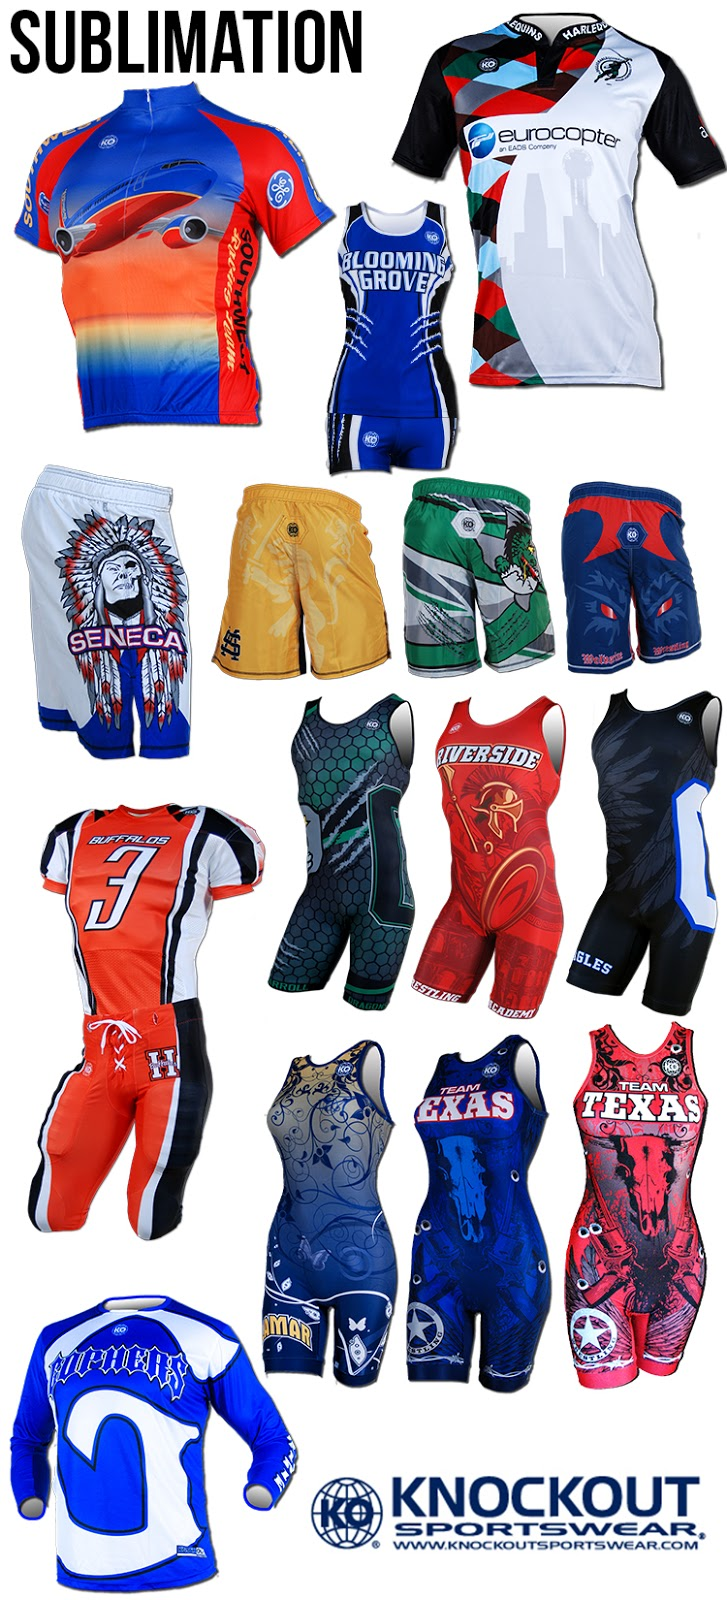 Sublimated Athletic apparel